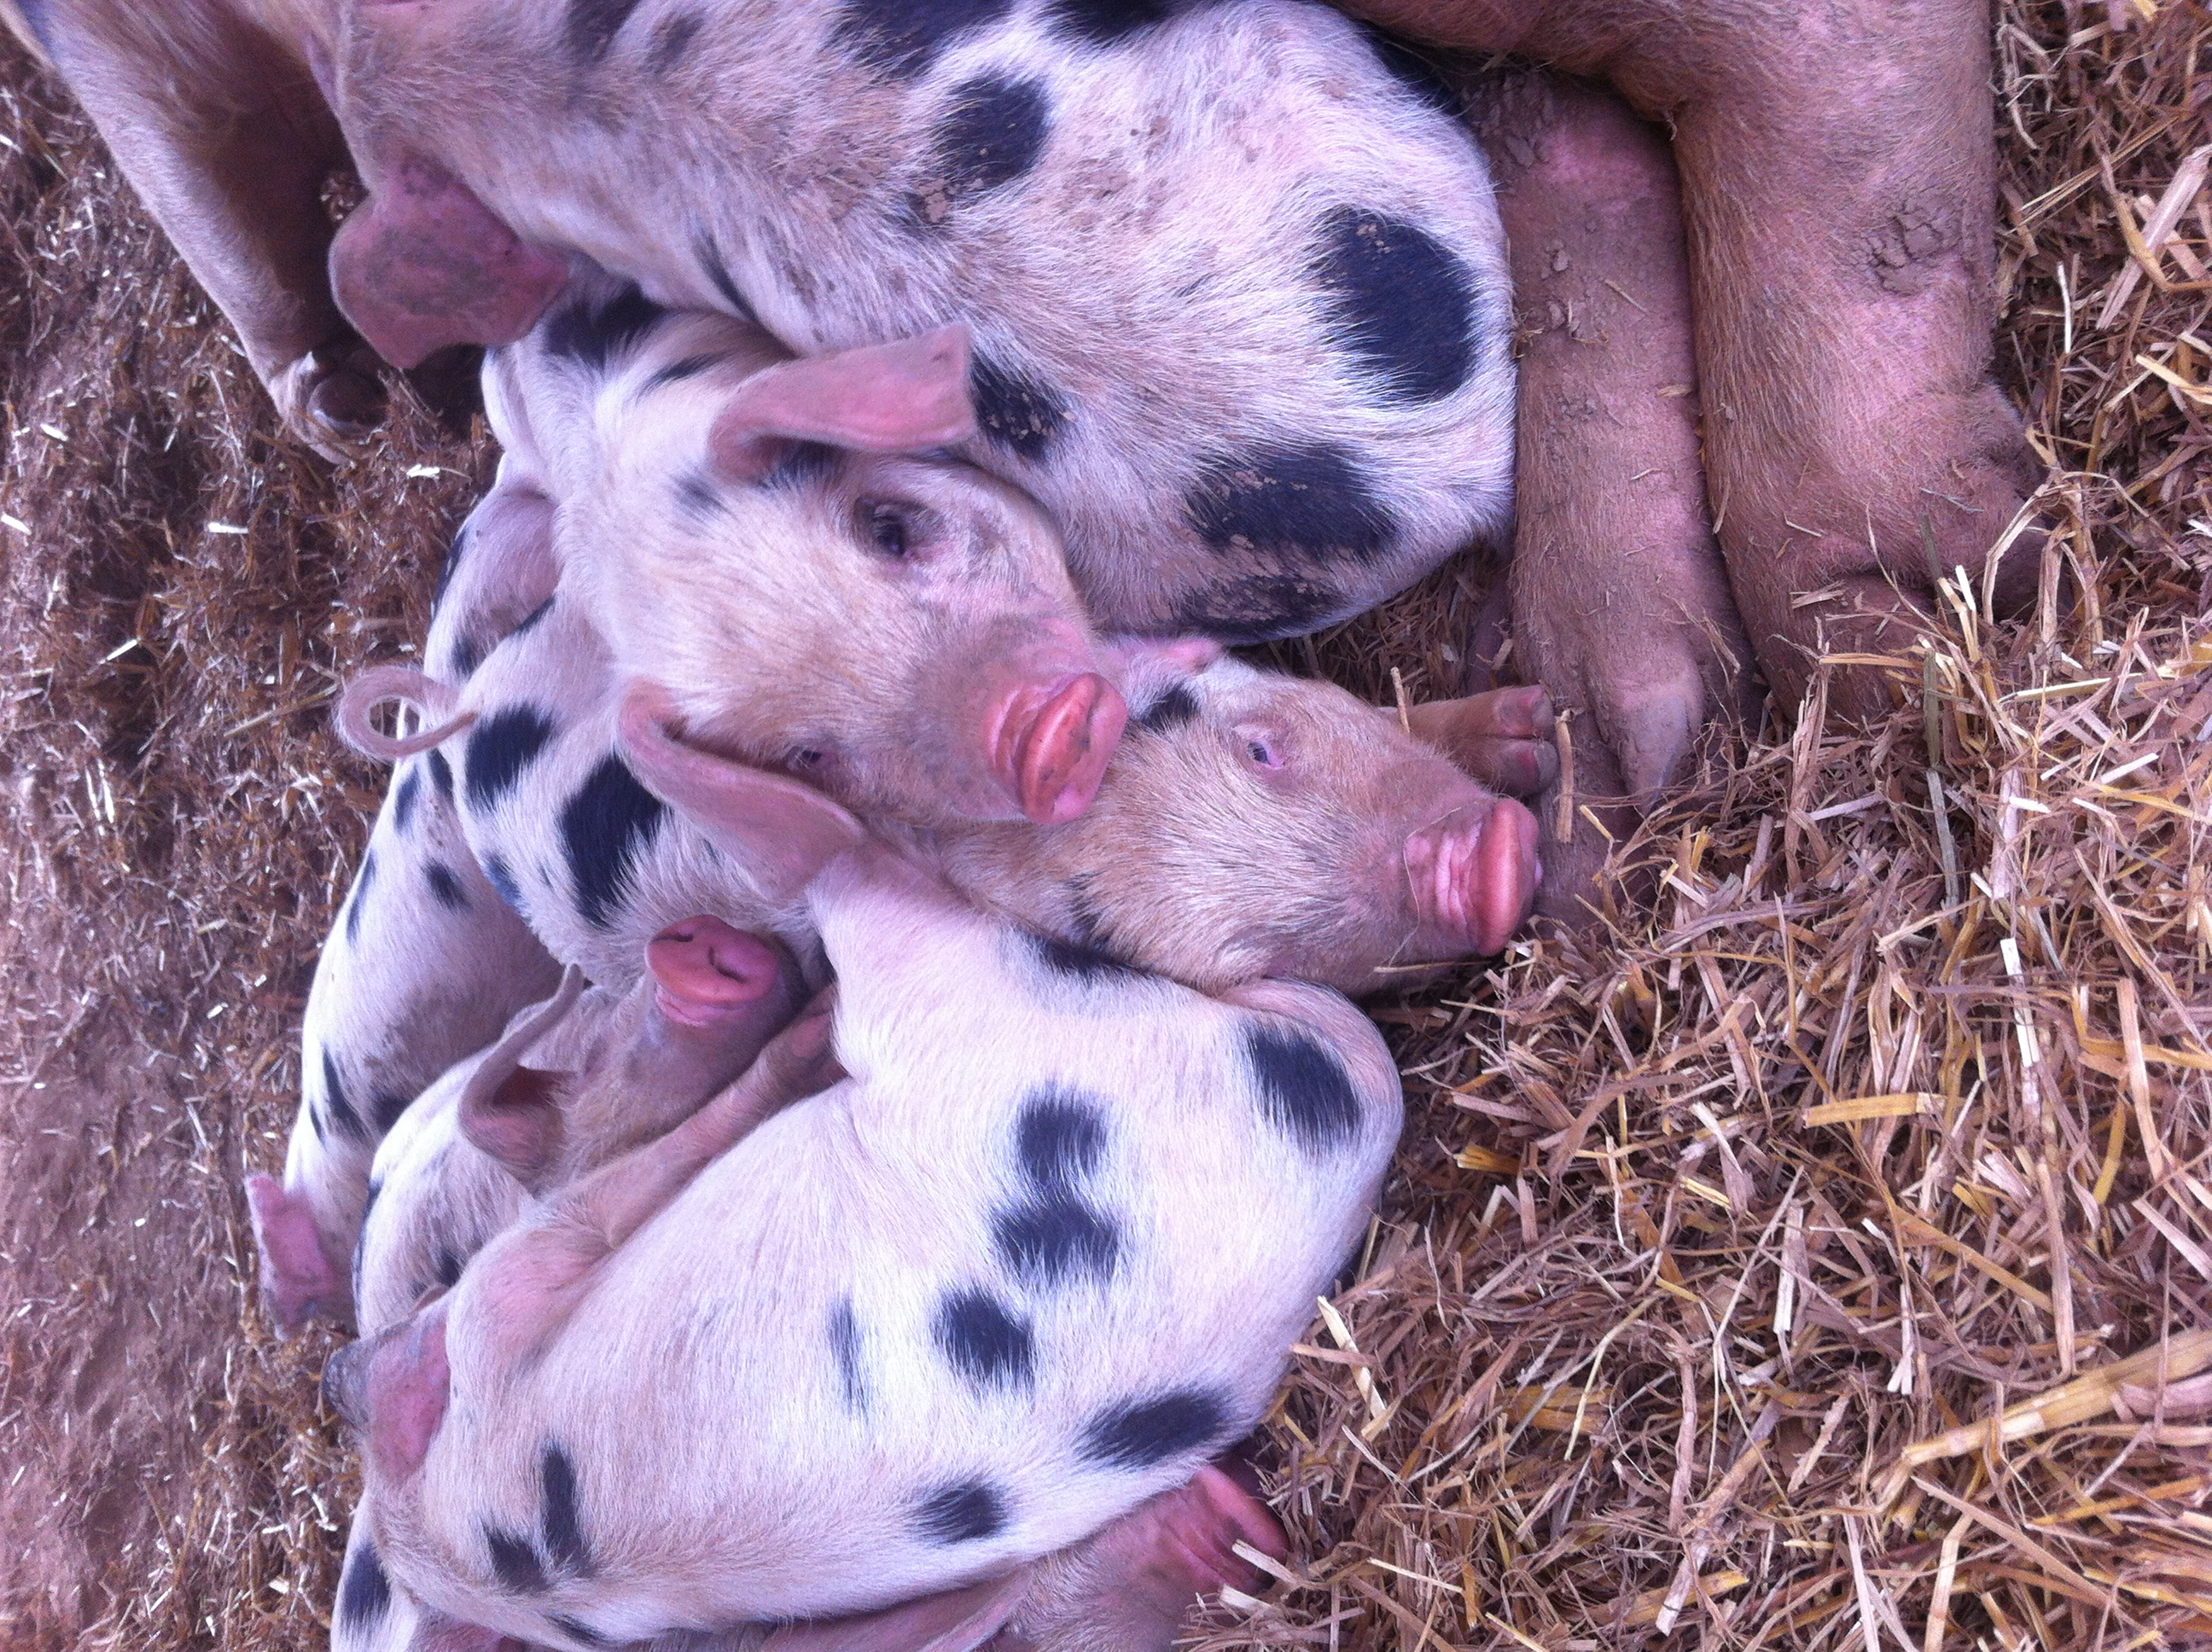 Adorable baby pigs, in case you missed that.